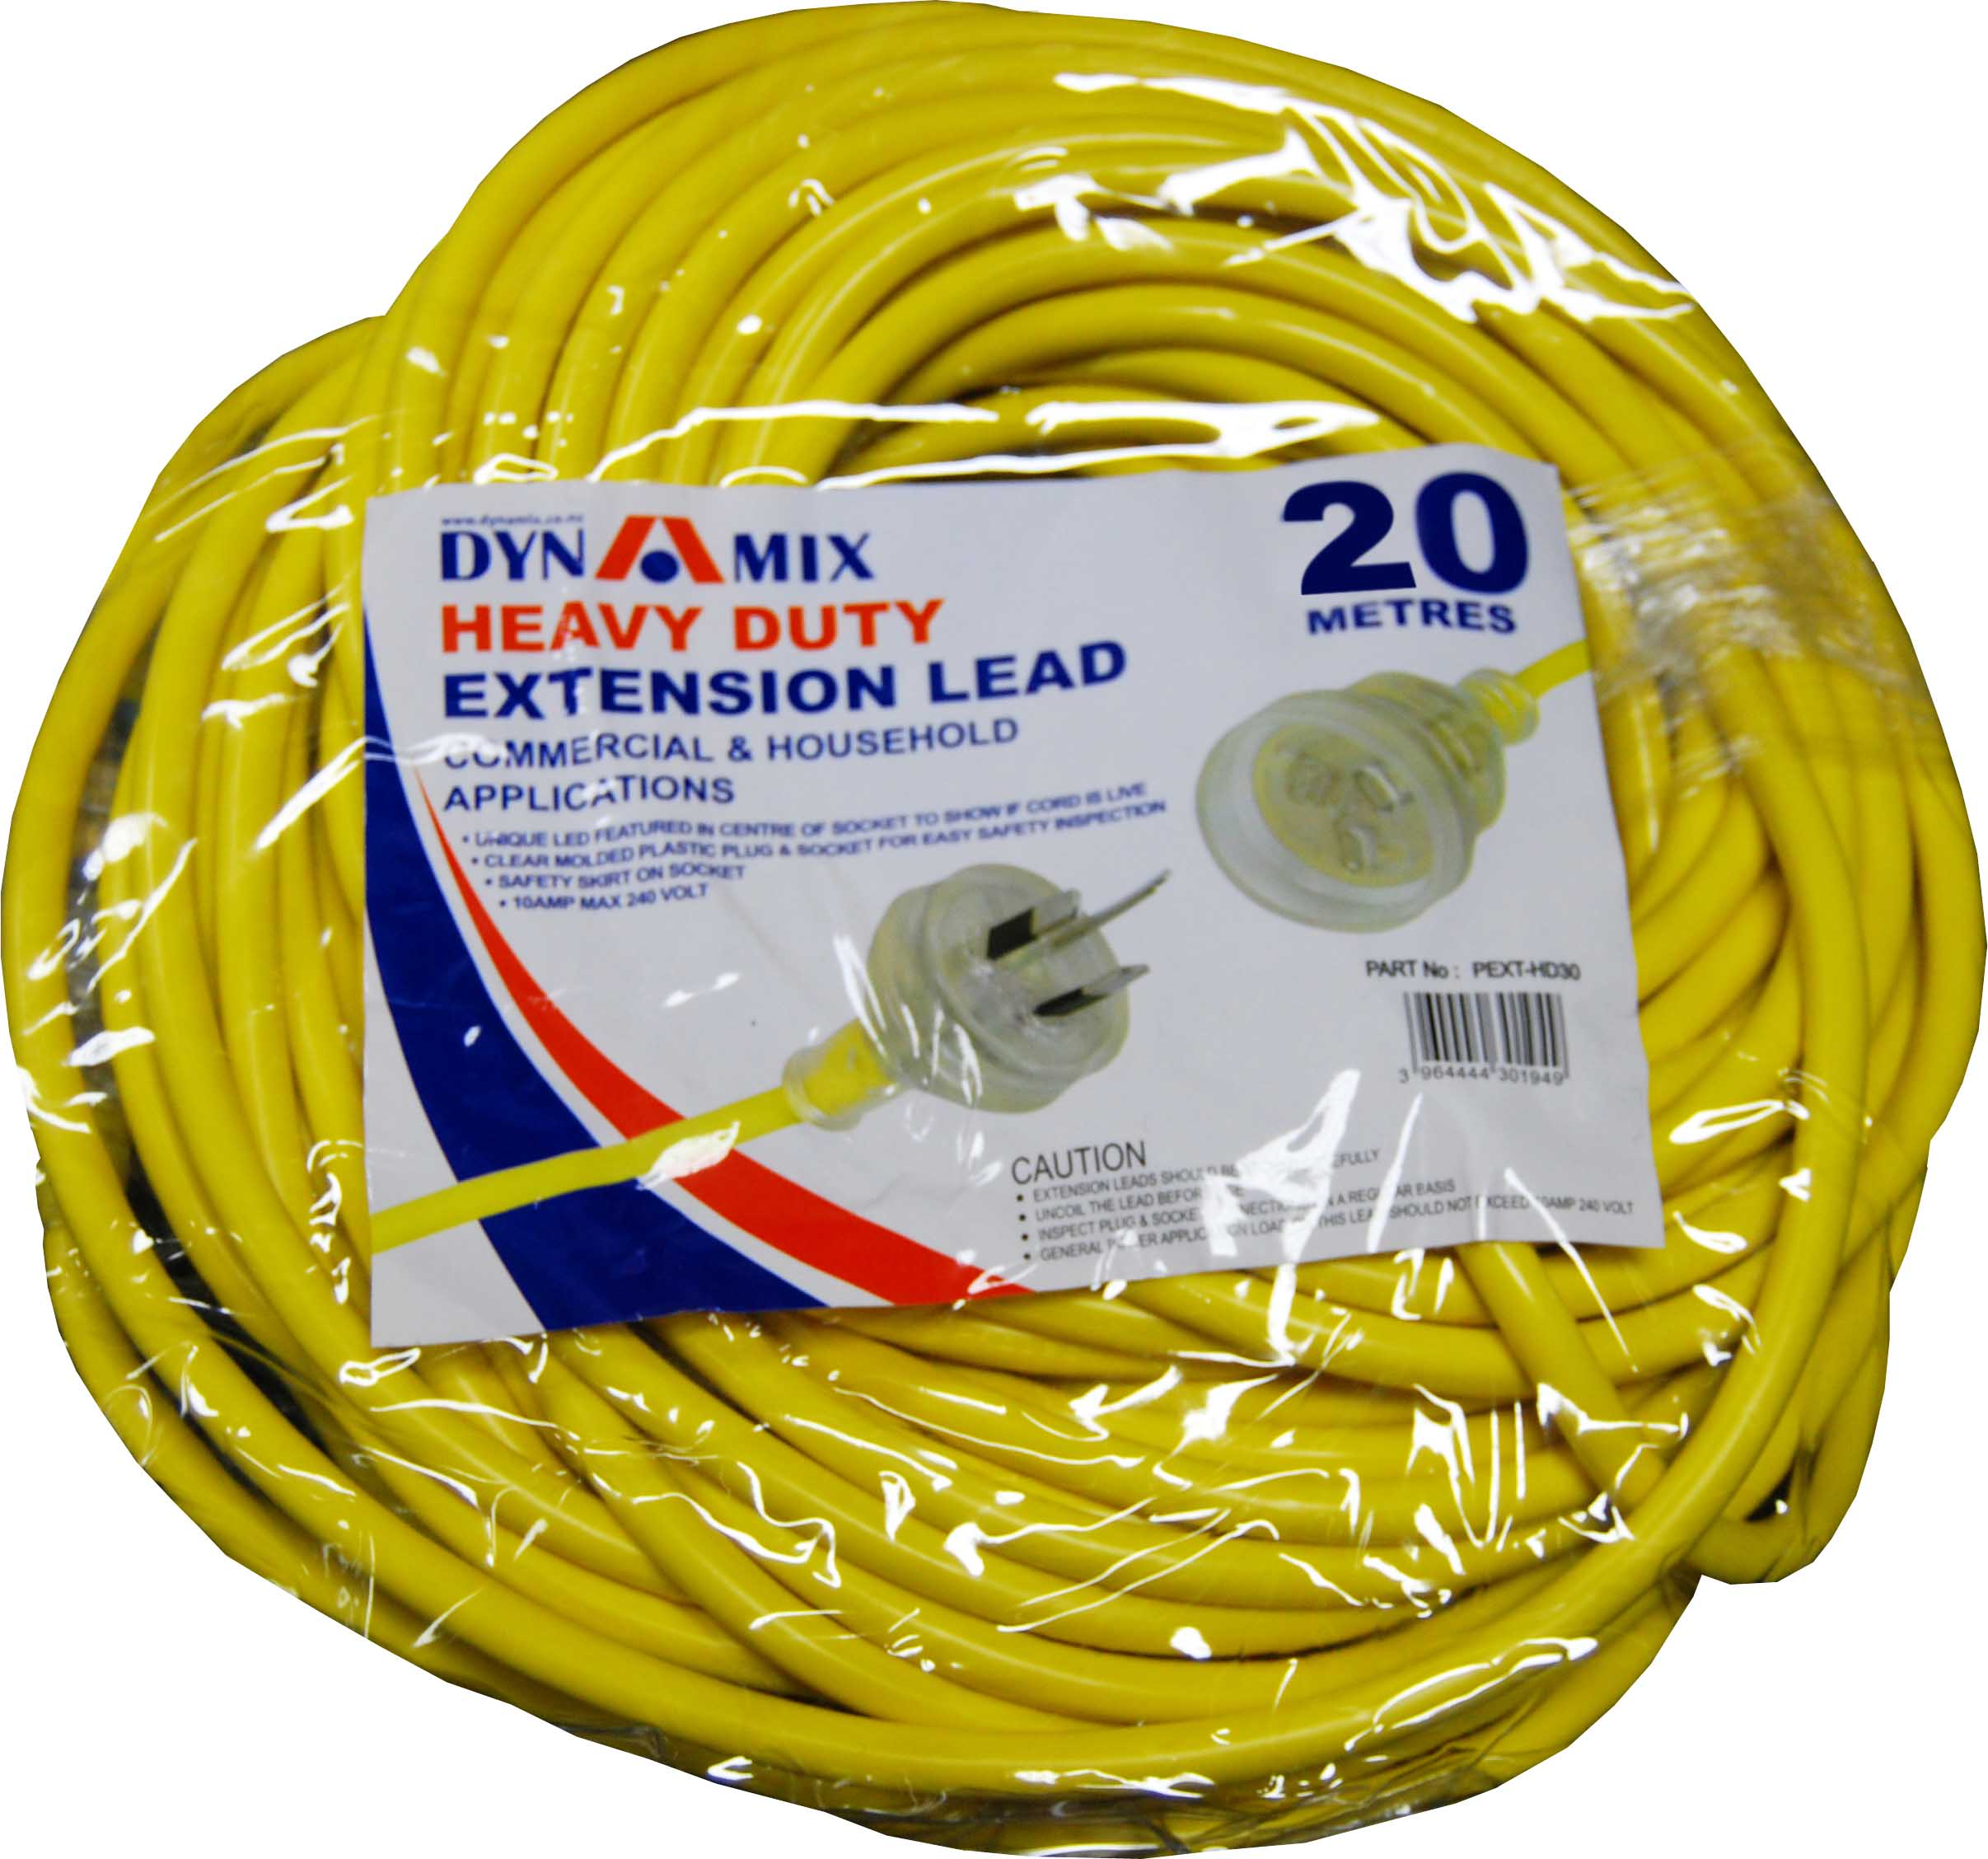 DYNAMIX 20M Heavy Duty Power Extension Lead. Supplied in Retail Packaging